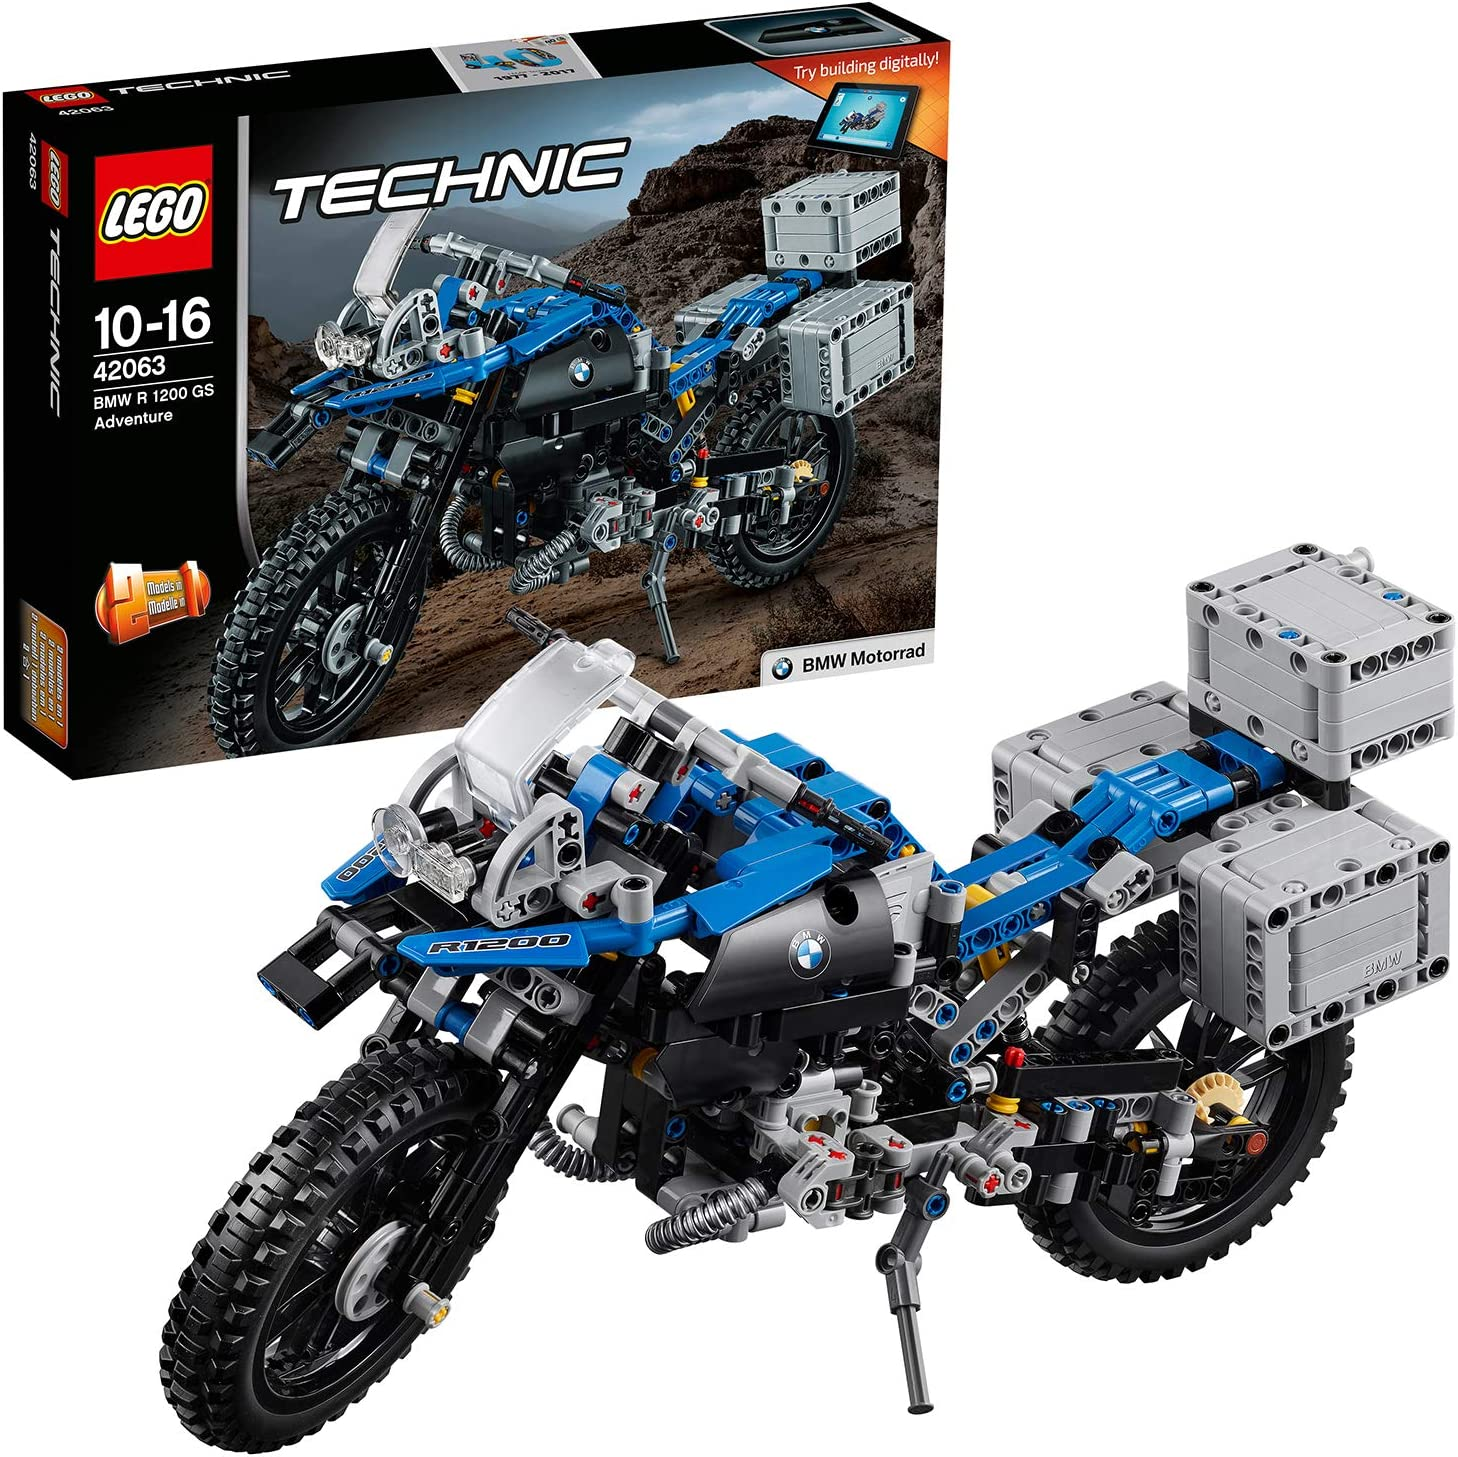 Top 7 Best LEGO Motorcycle Sets Reviews in 2020 5